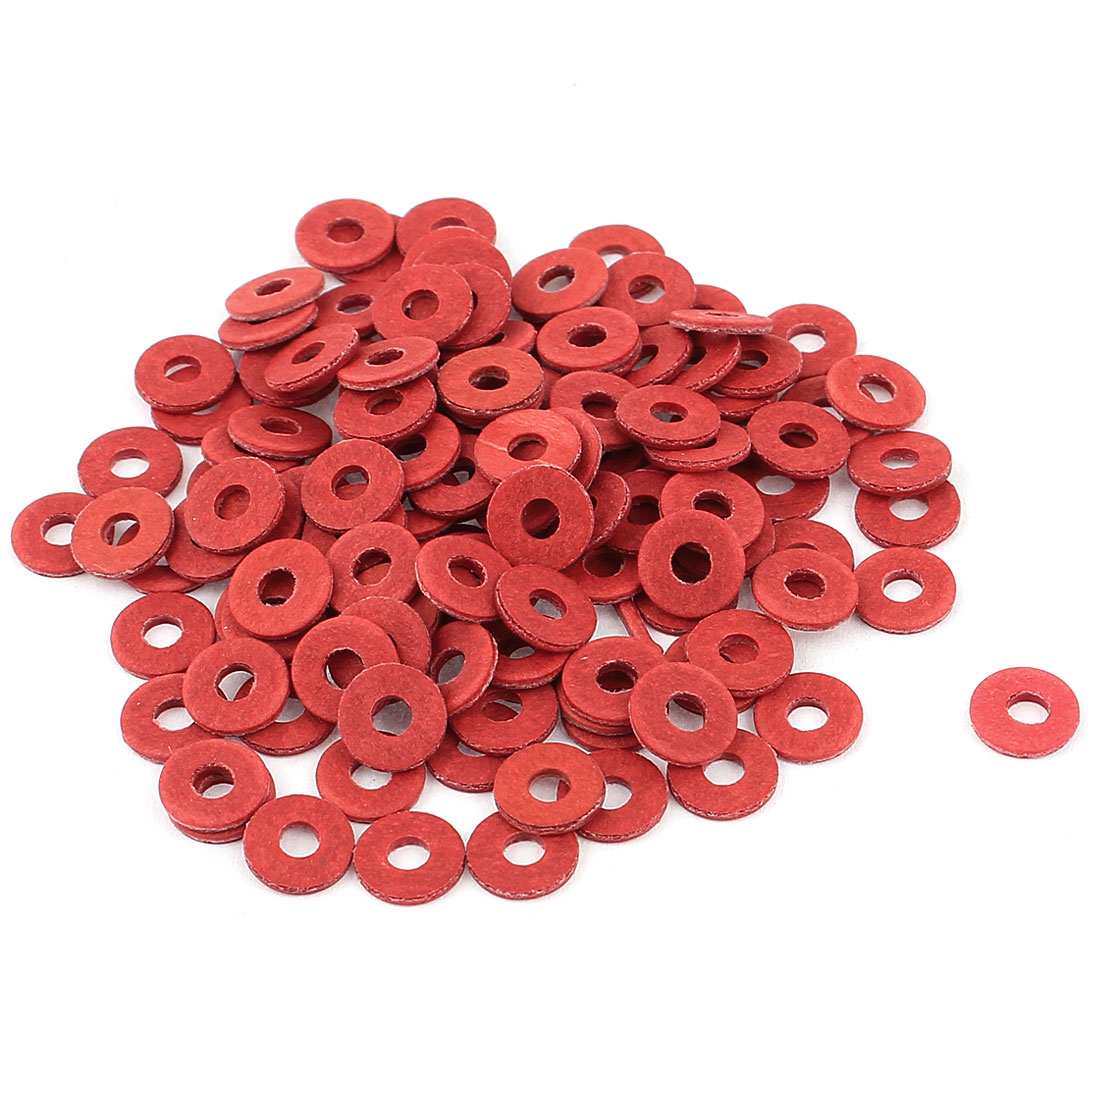 100Pcs 3 x 8 x 1.2mm Fiber Motherboard Insulating Washers Red